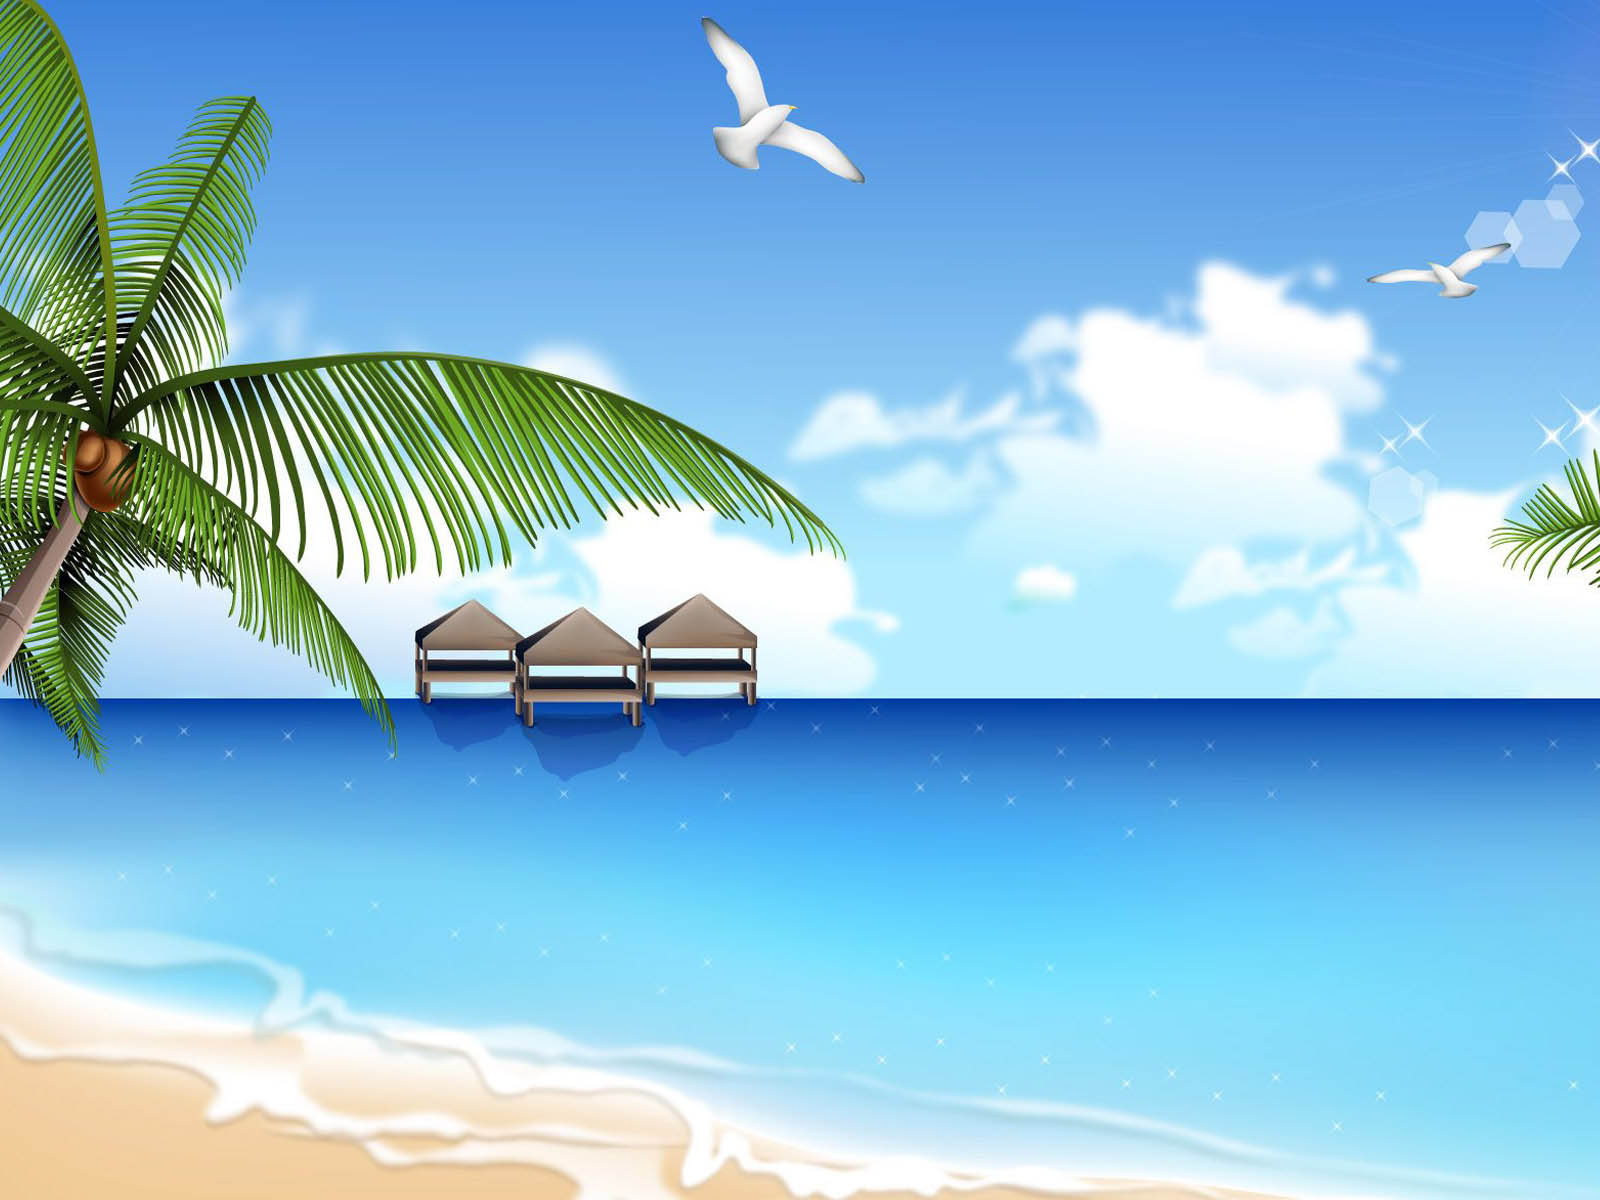 Free 3d Wallpapers For Windows Xp Wallpapers Vector Beach